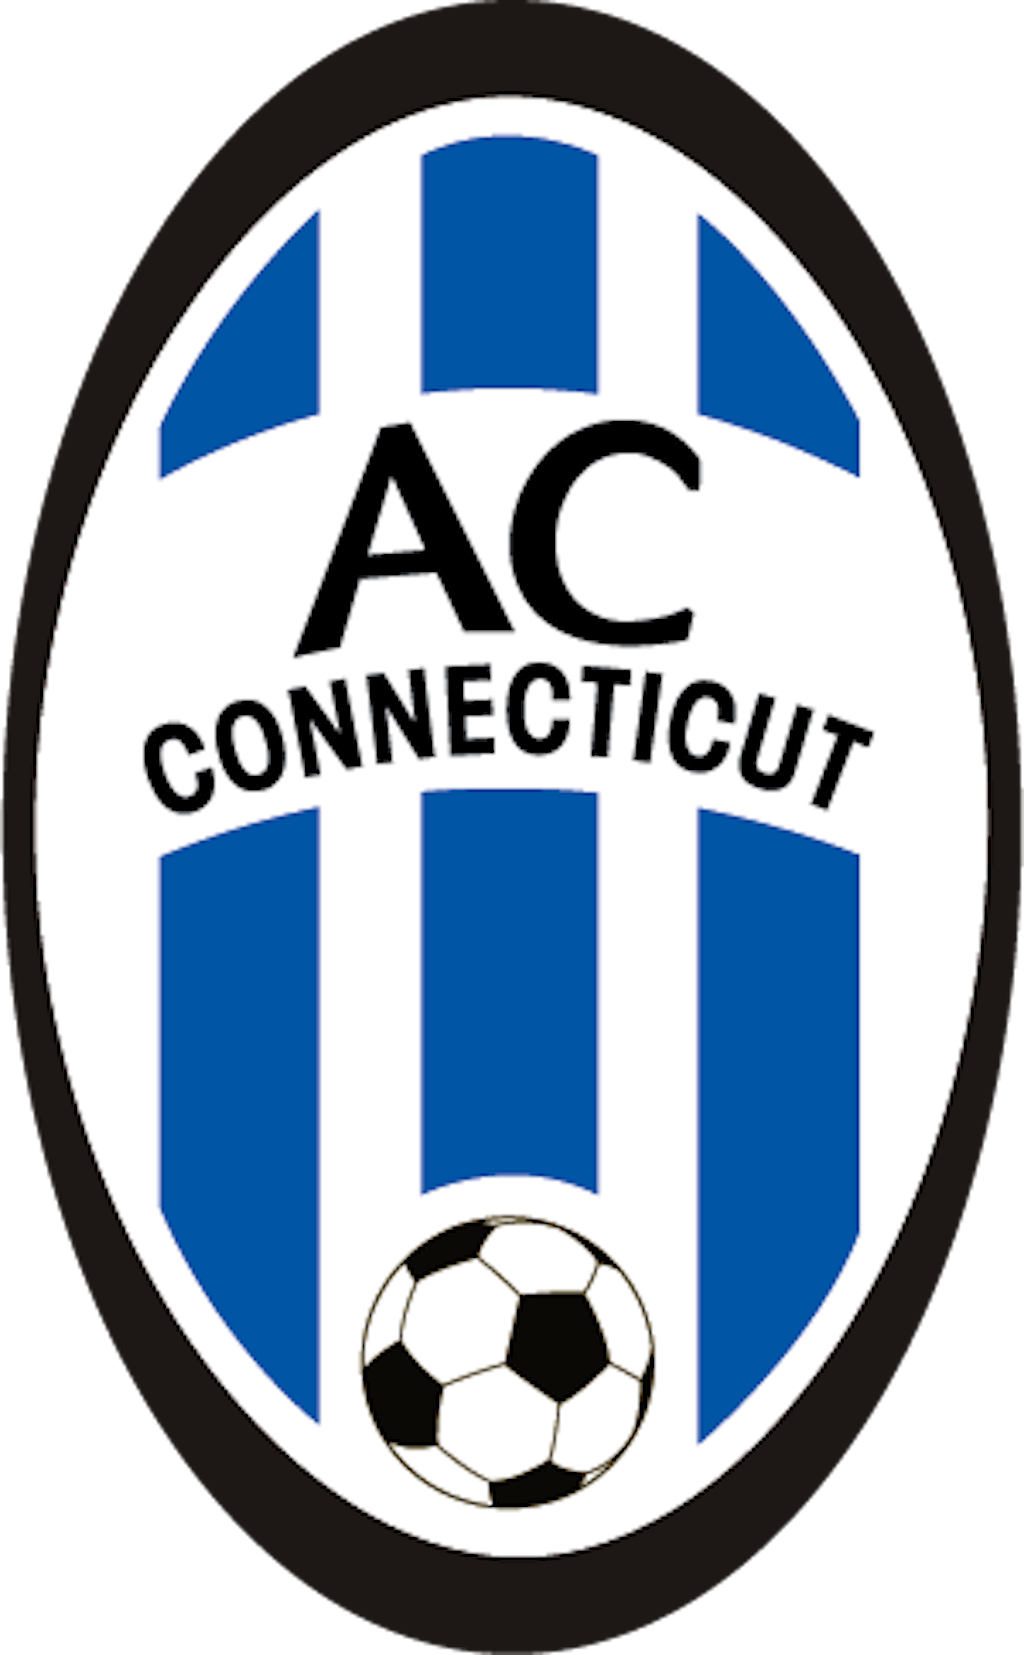 AC Connecticut